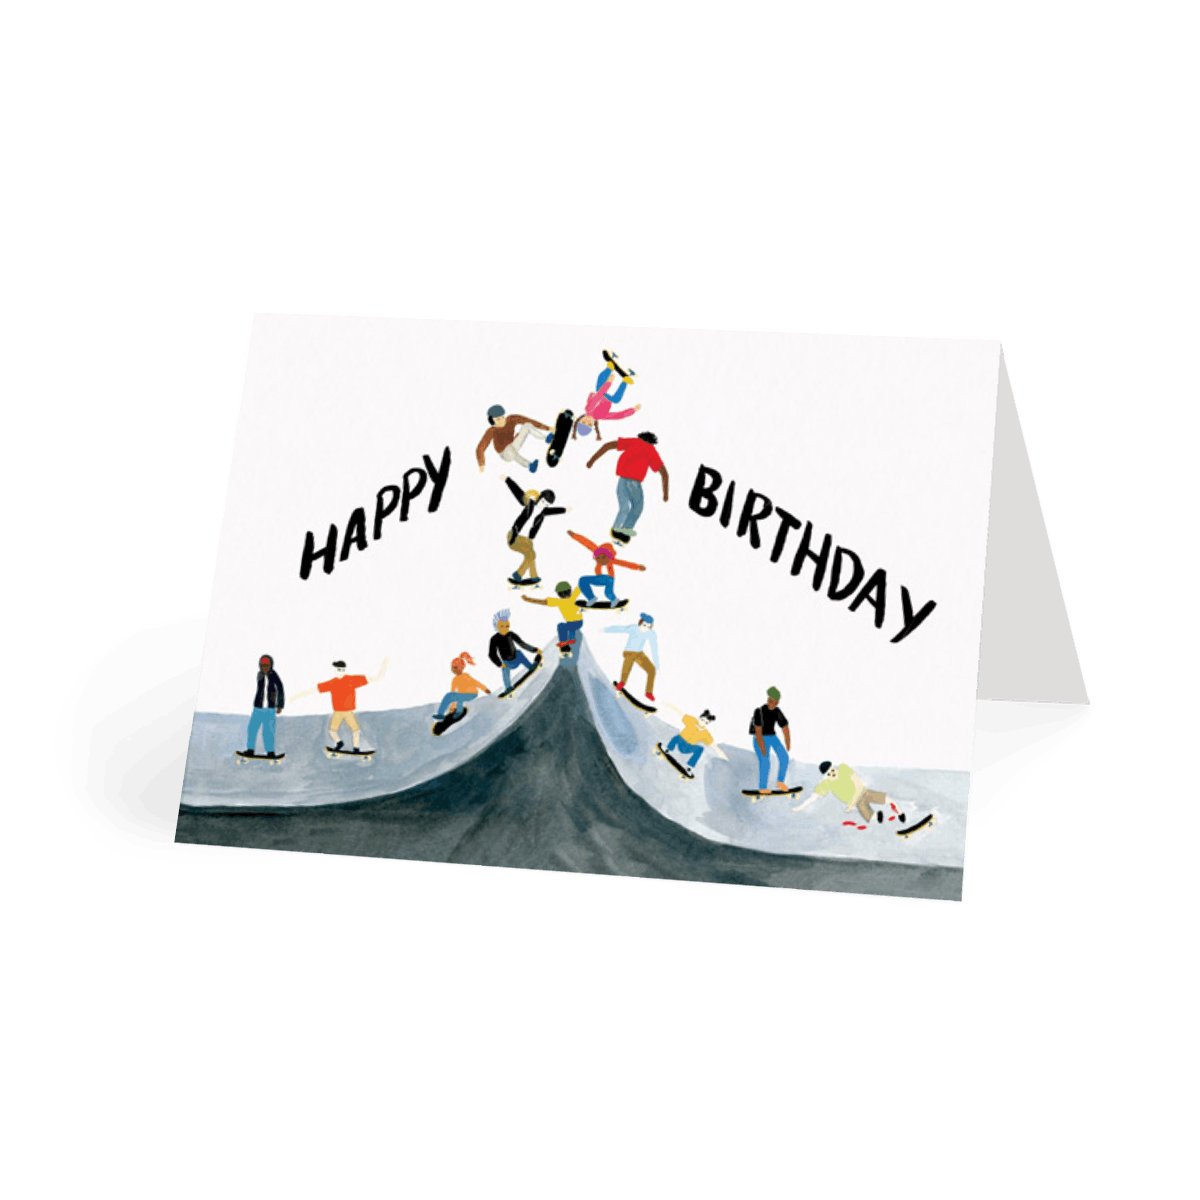 Https%3a%2f%2fwww.papier.com%2fproduct image%2f16869%2f14%2fskater birthday 4438 front 1485258032.png?ixlib=rb 1.1